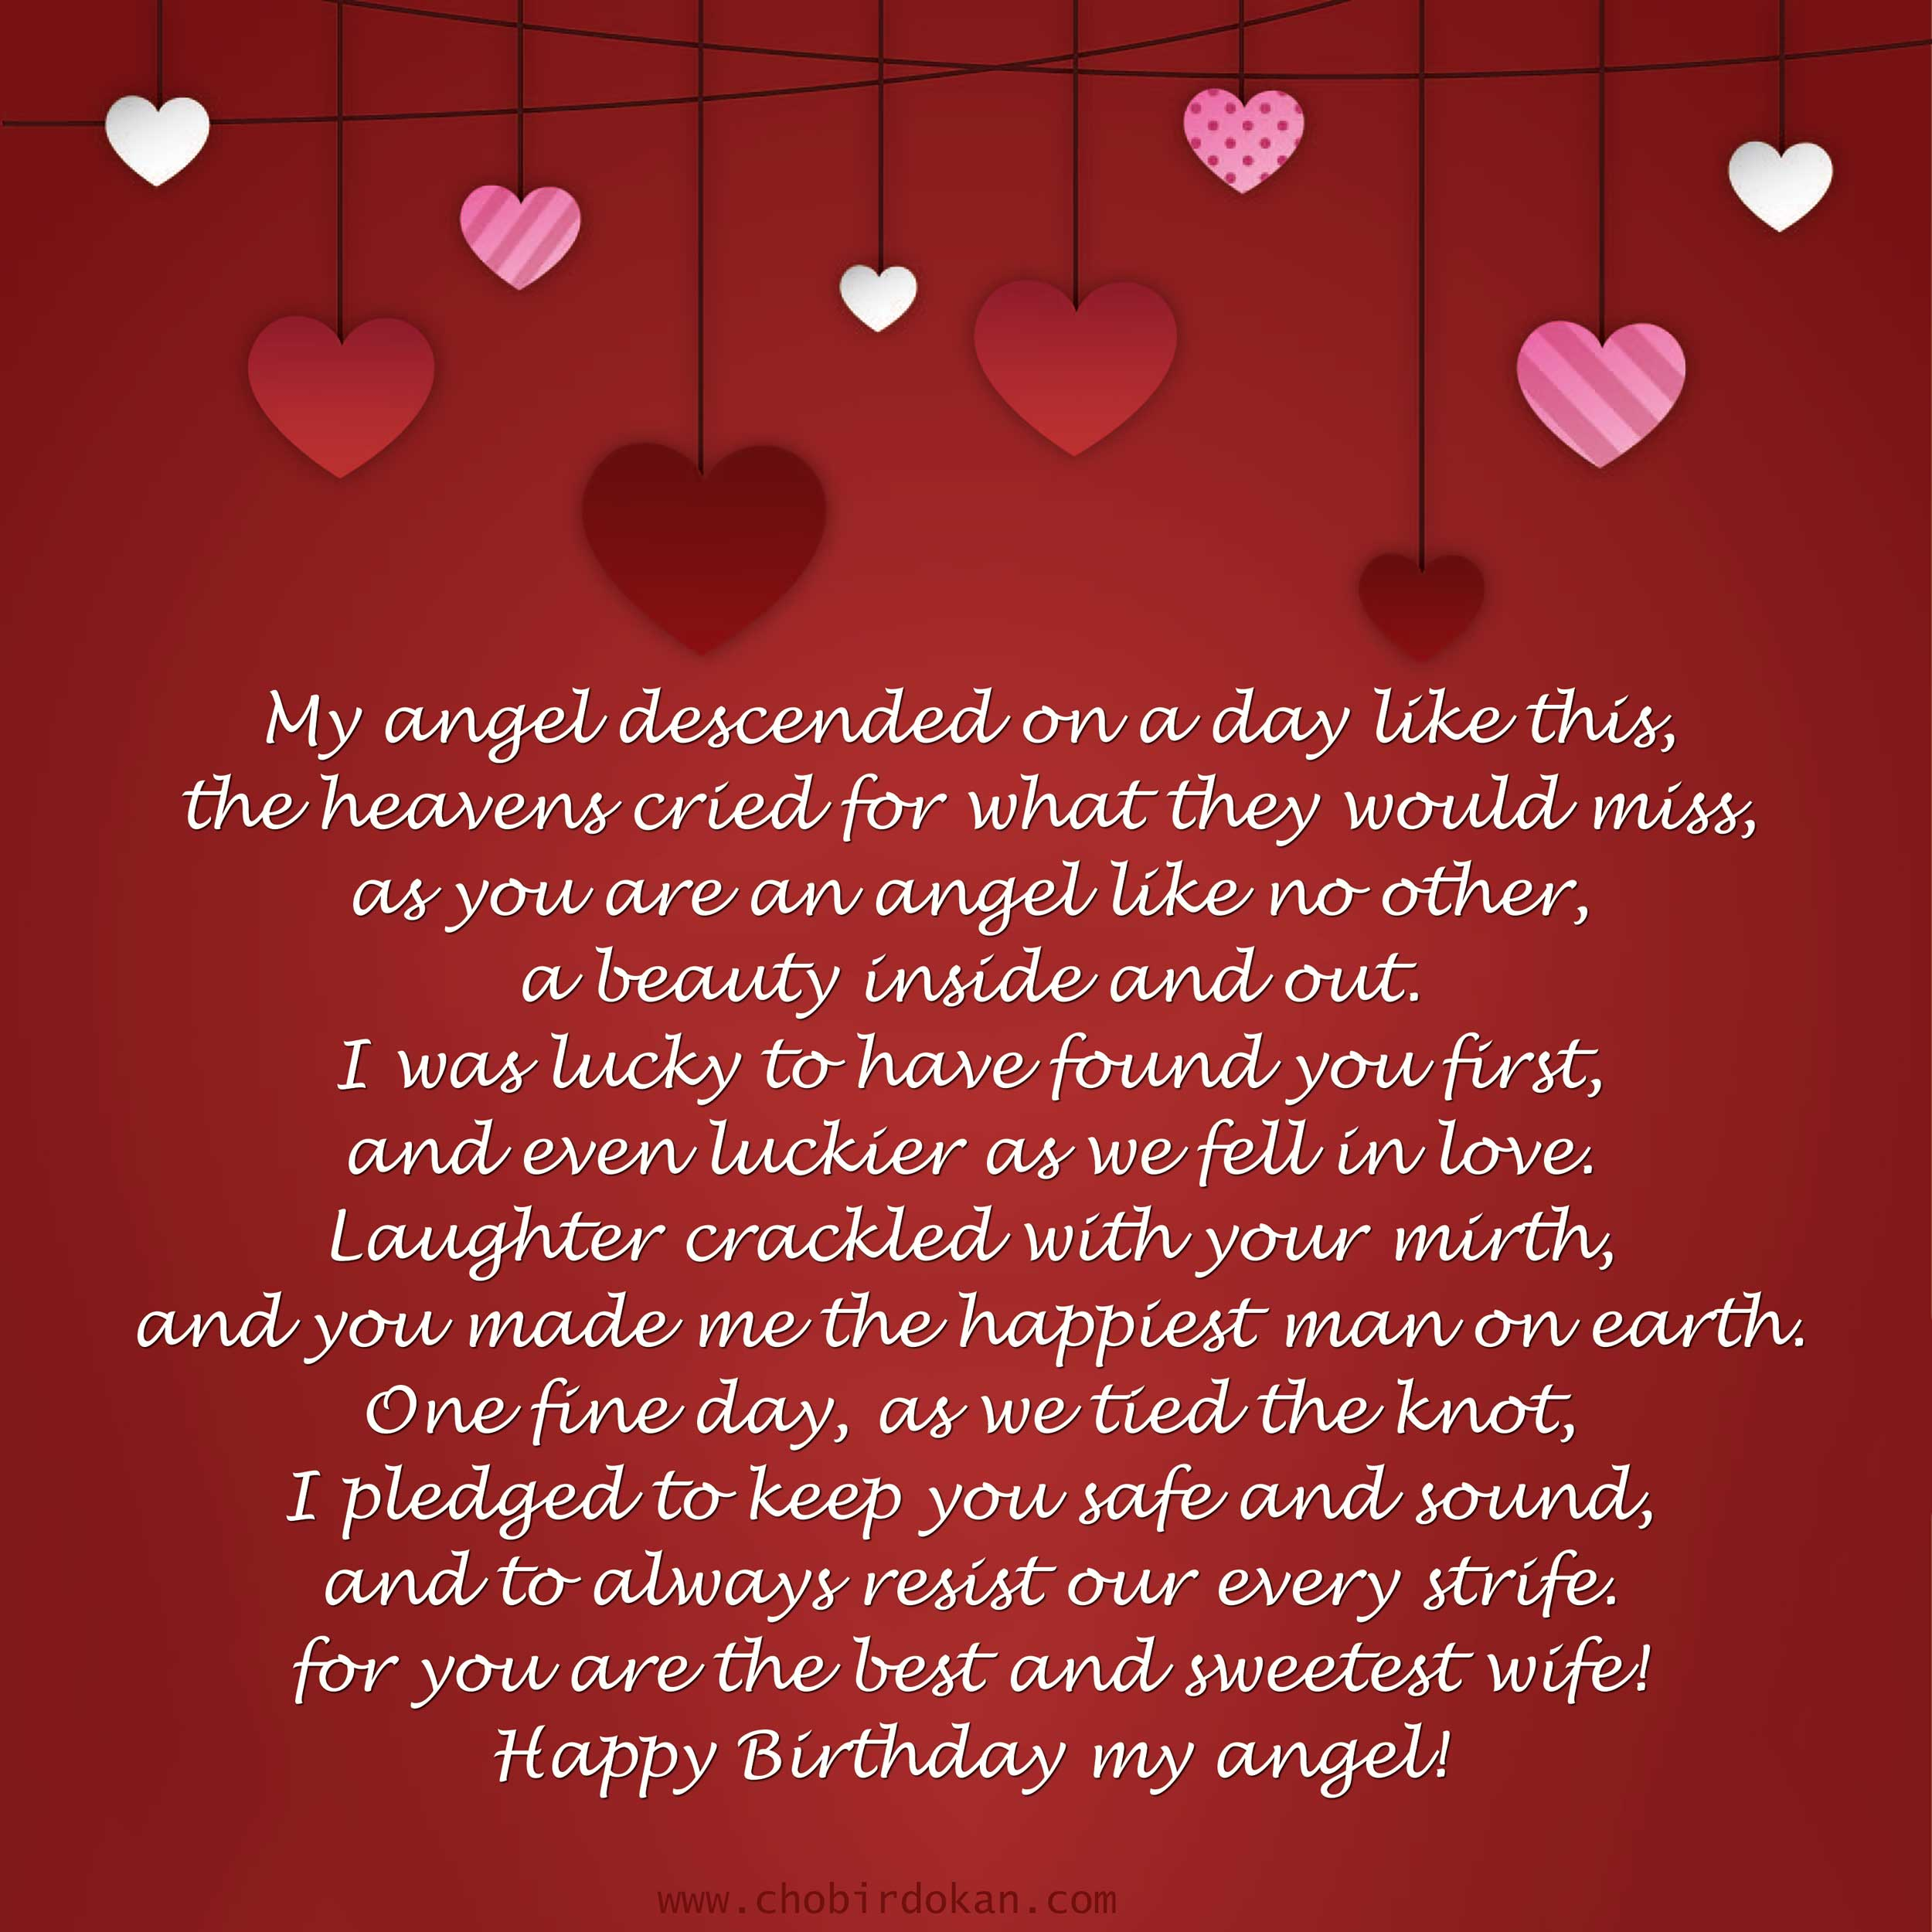 Romantic happy birthday images for her